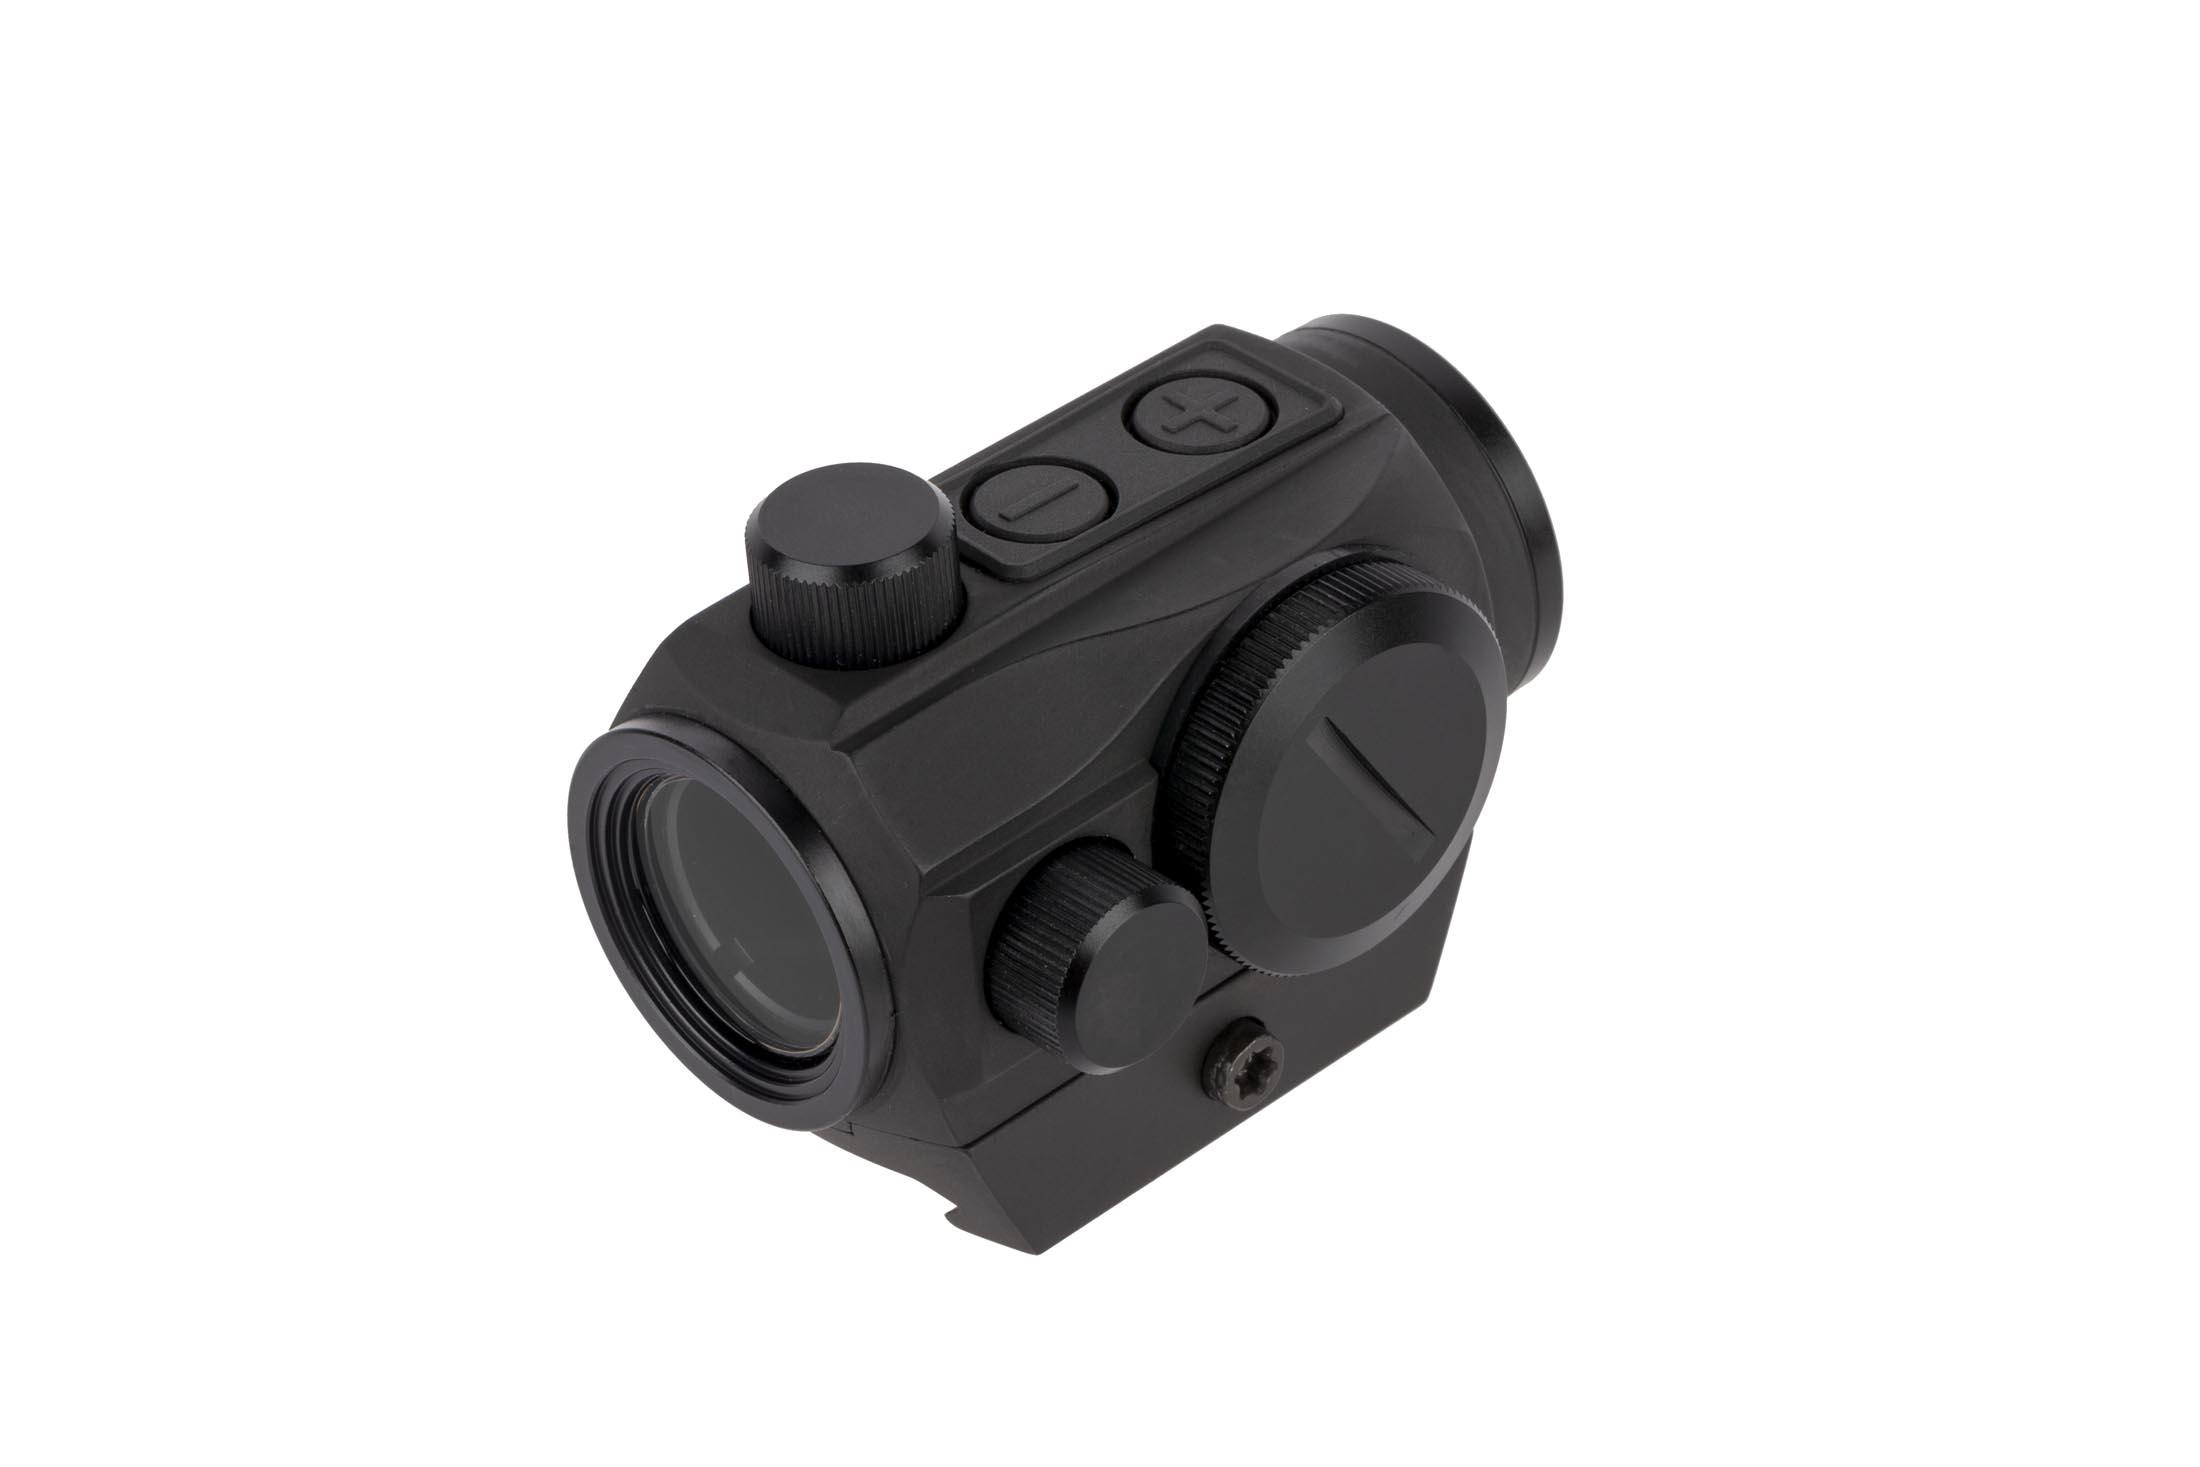 Primary Arms MD-ADS 50,000 hour red dot with 2 MOA reticle features a low-profile snag-free battery cover